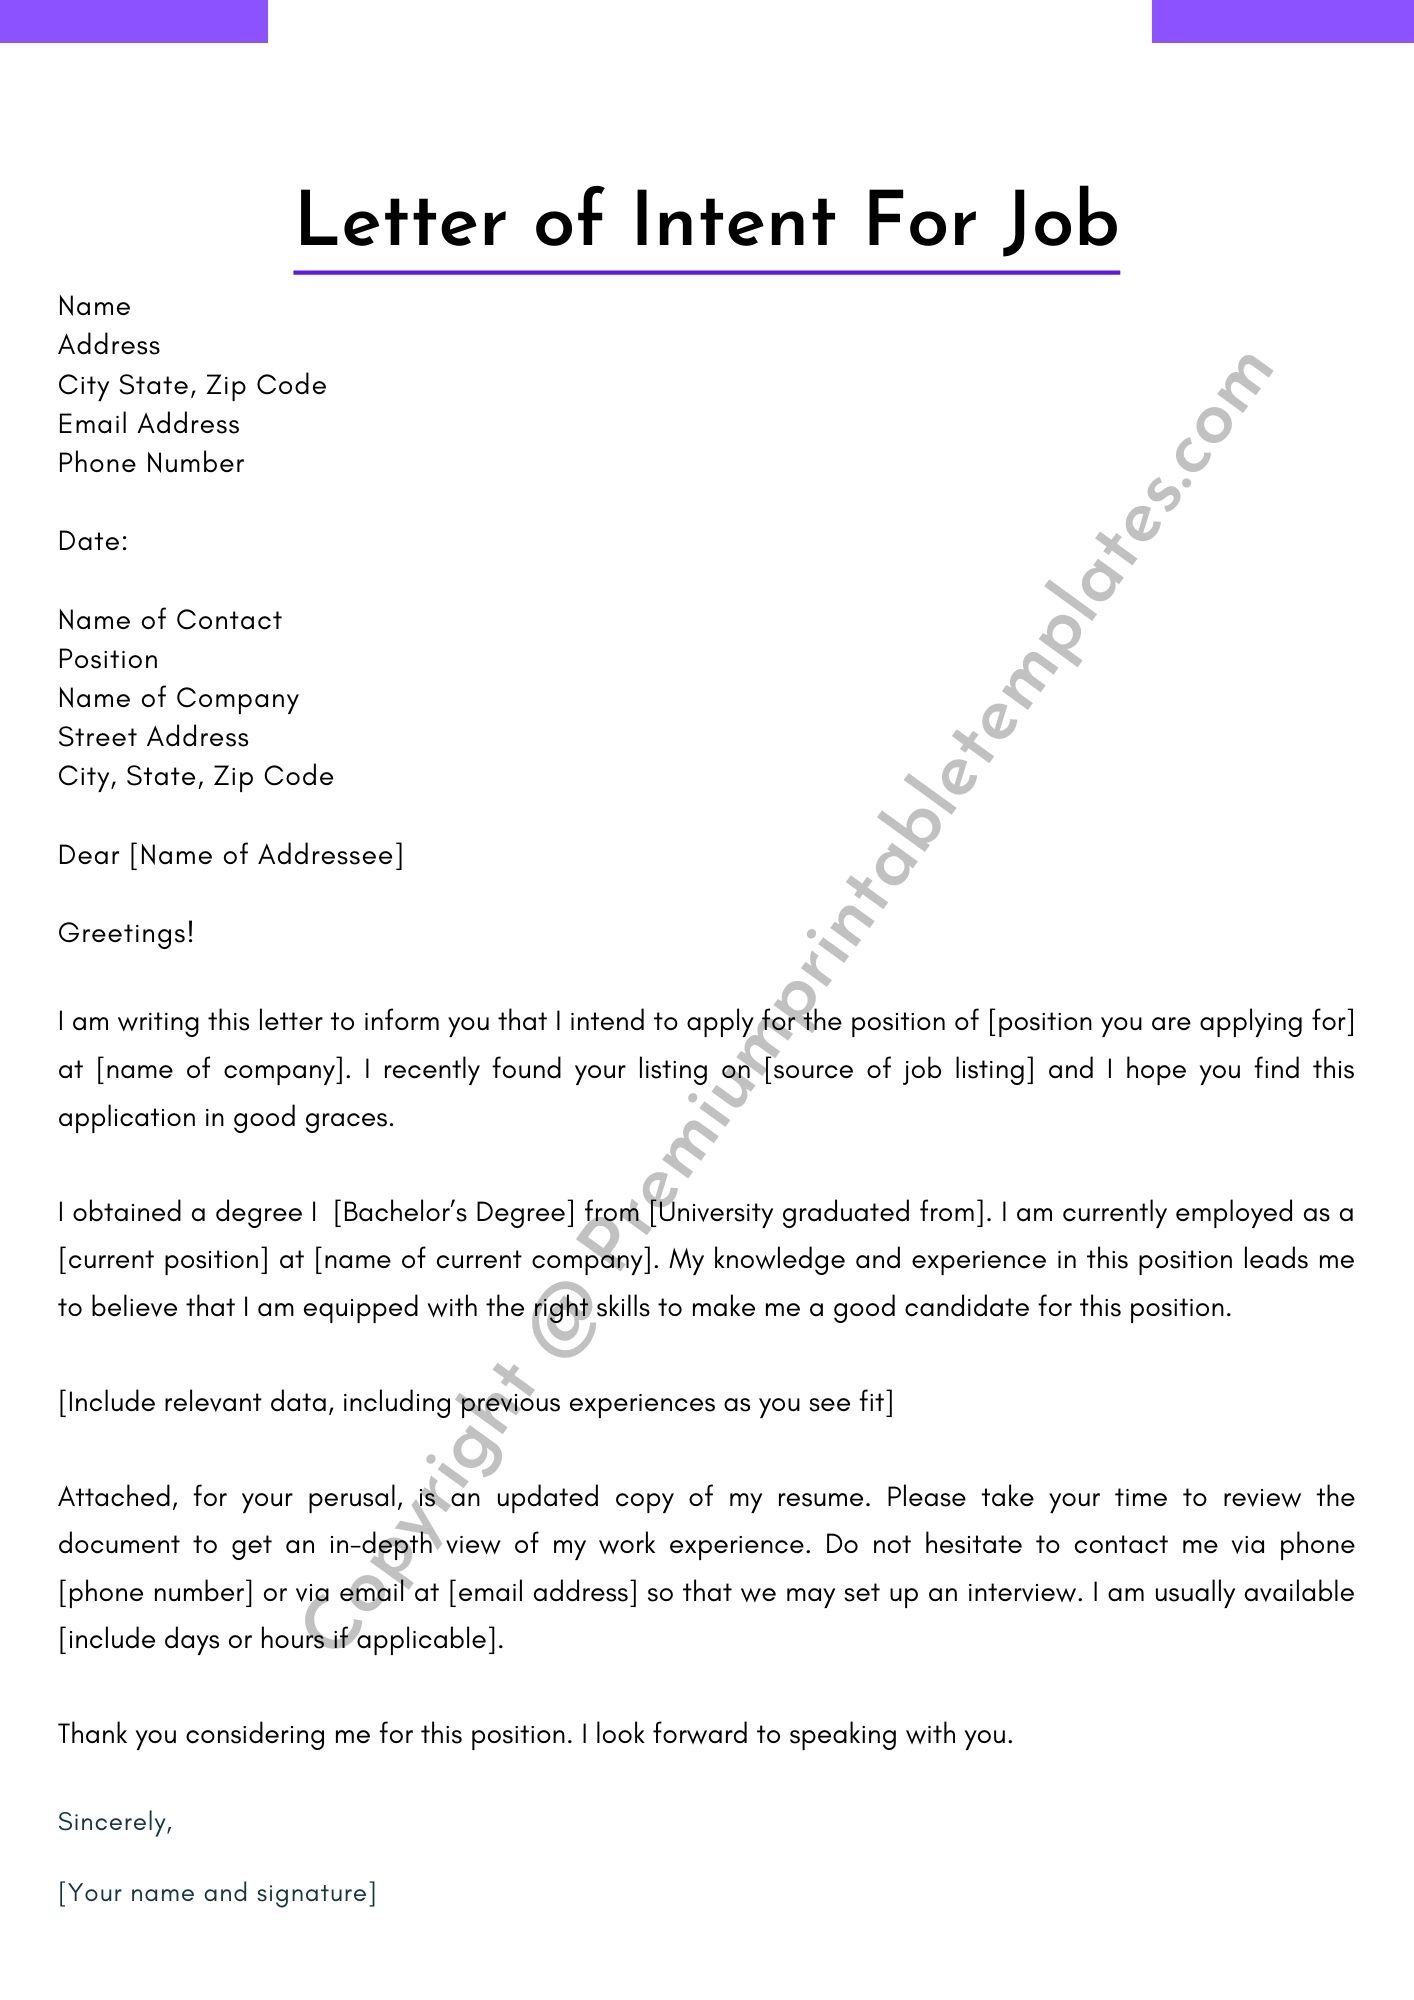 Intent Letter For Job from premiumprintabletemplates.com